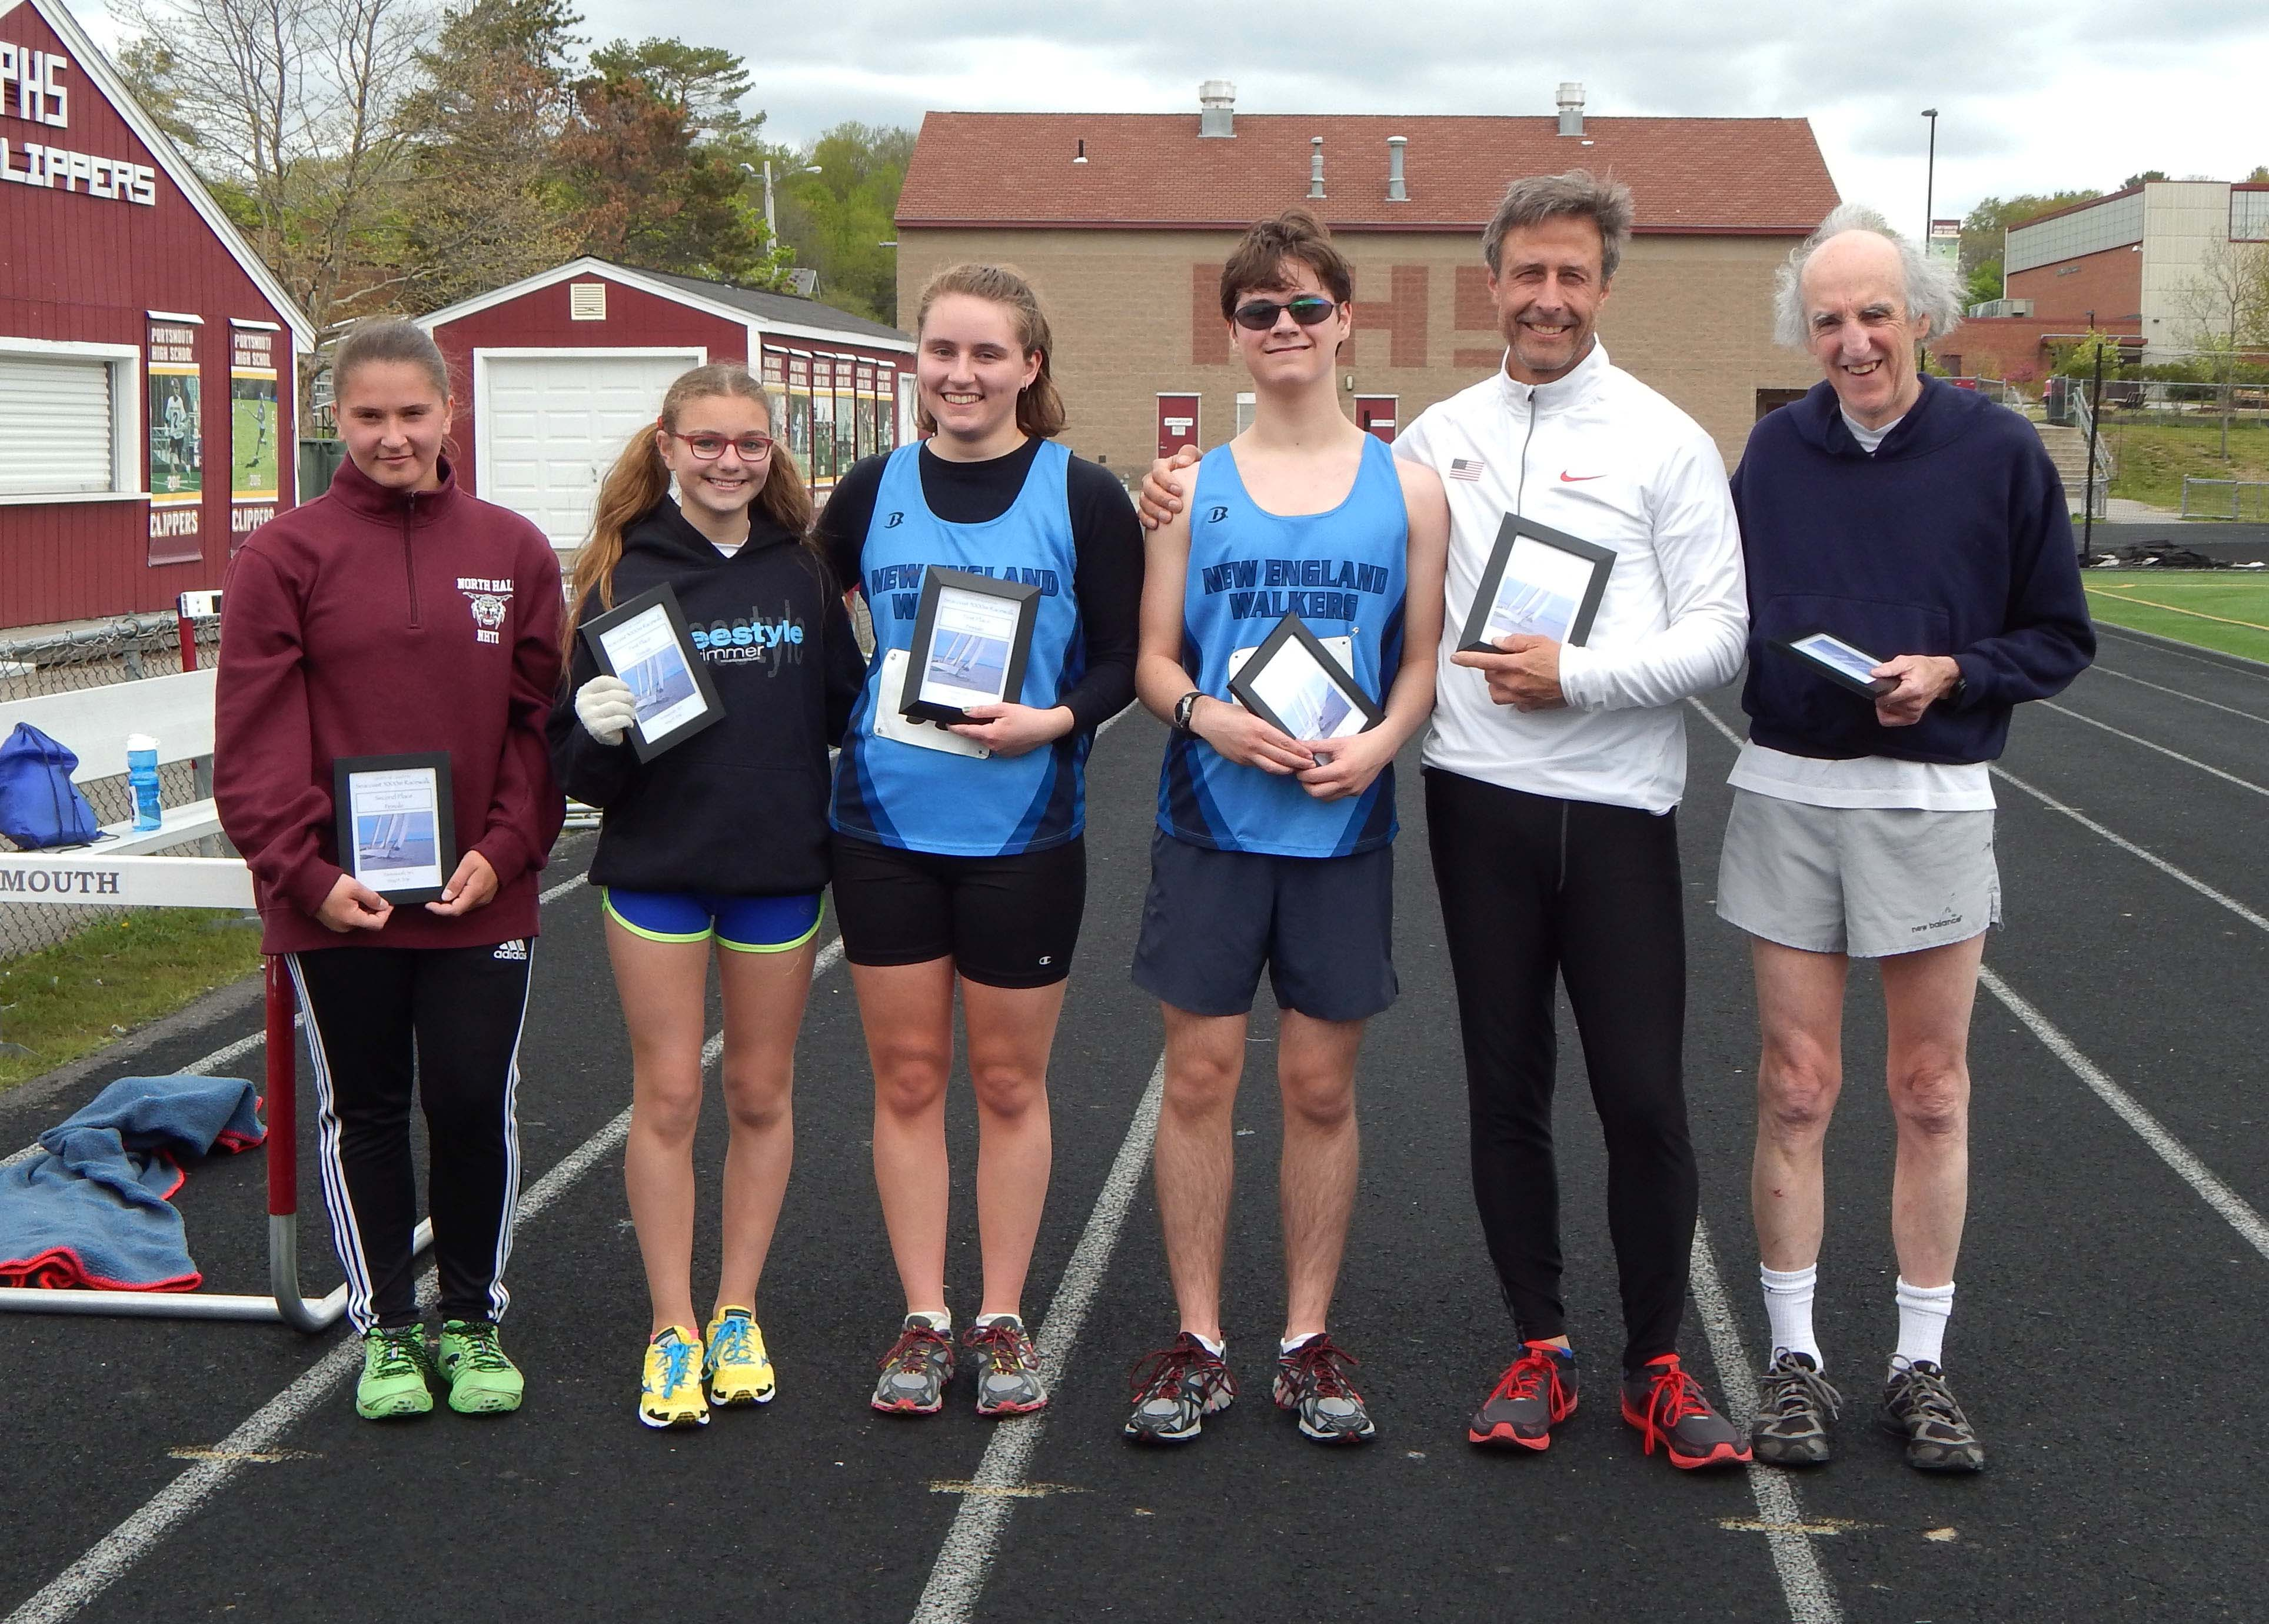 Award winners of the 2016 Seacoast Racewalk: Val Vaitones, Isabelle Trefts, Maegan Allen, Nolan Allen, Ed O'Rourke, and Bob Keating.